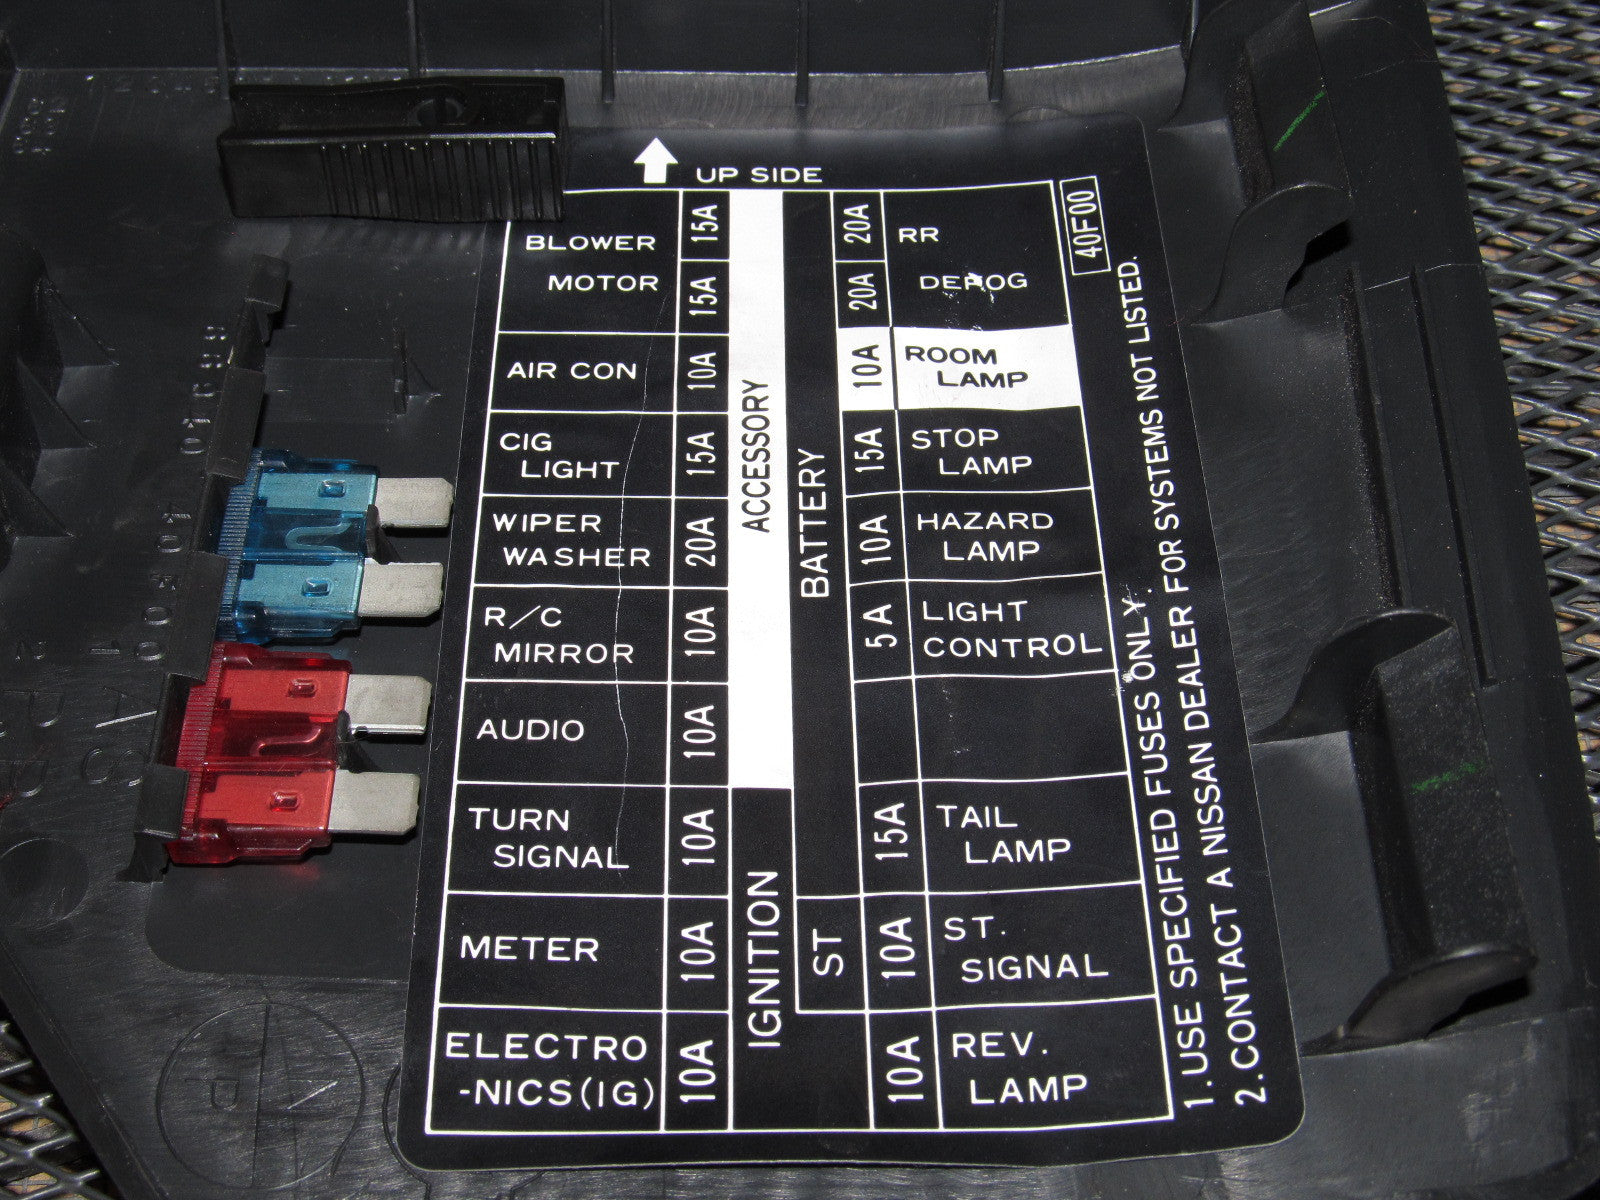 240sx fuse box diagram 240sx fuse box diagram wiring diagrams rh parsplus co S13 Coupe Clean S13